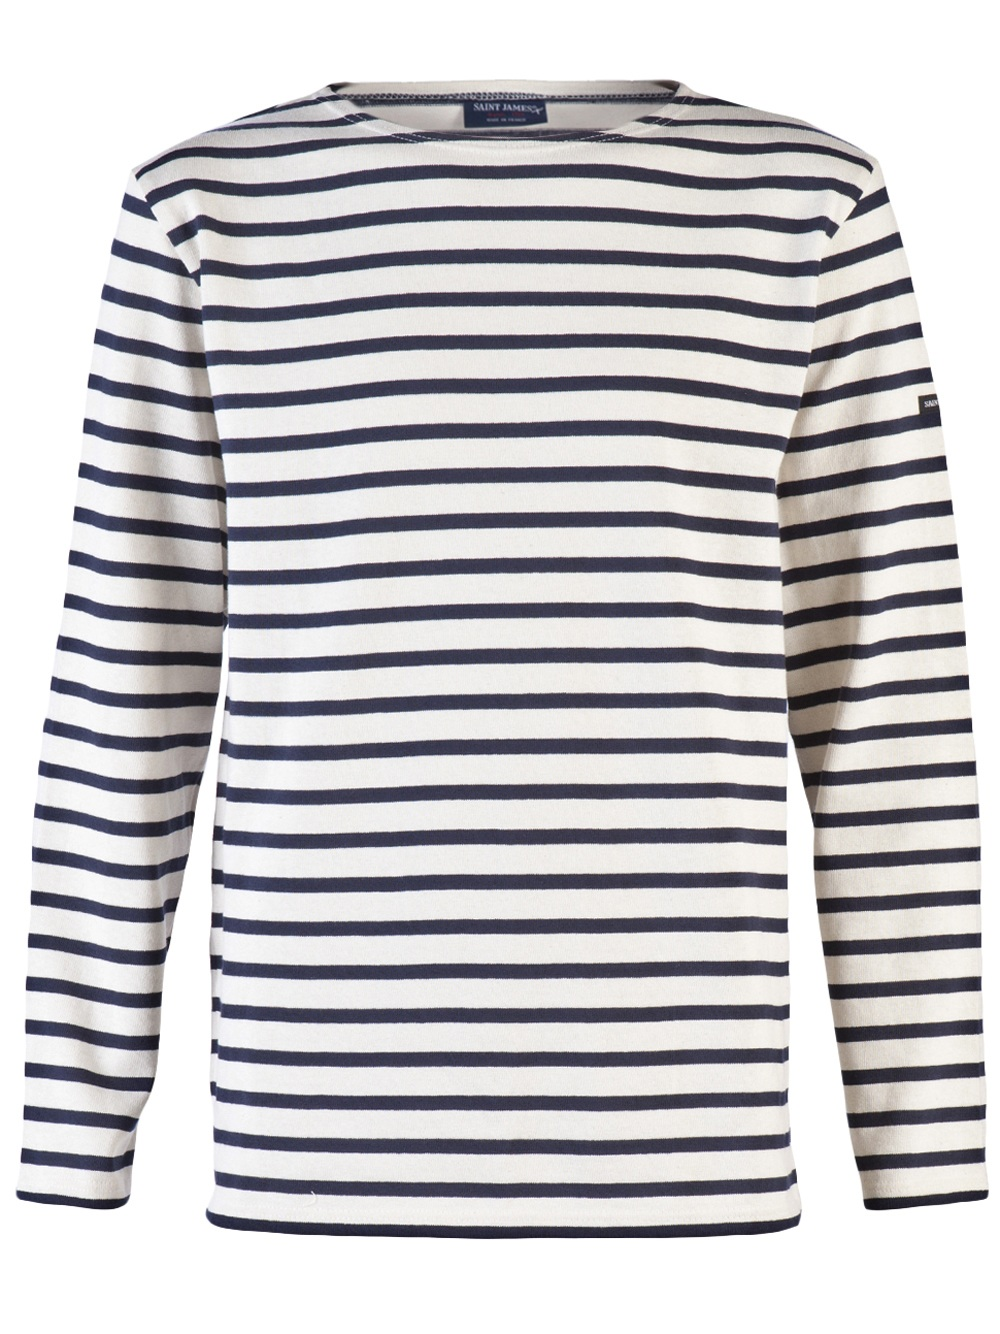 Saint james striped long sleeve tee in blue for men lyst for St james striped shirt